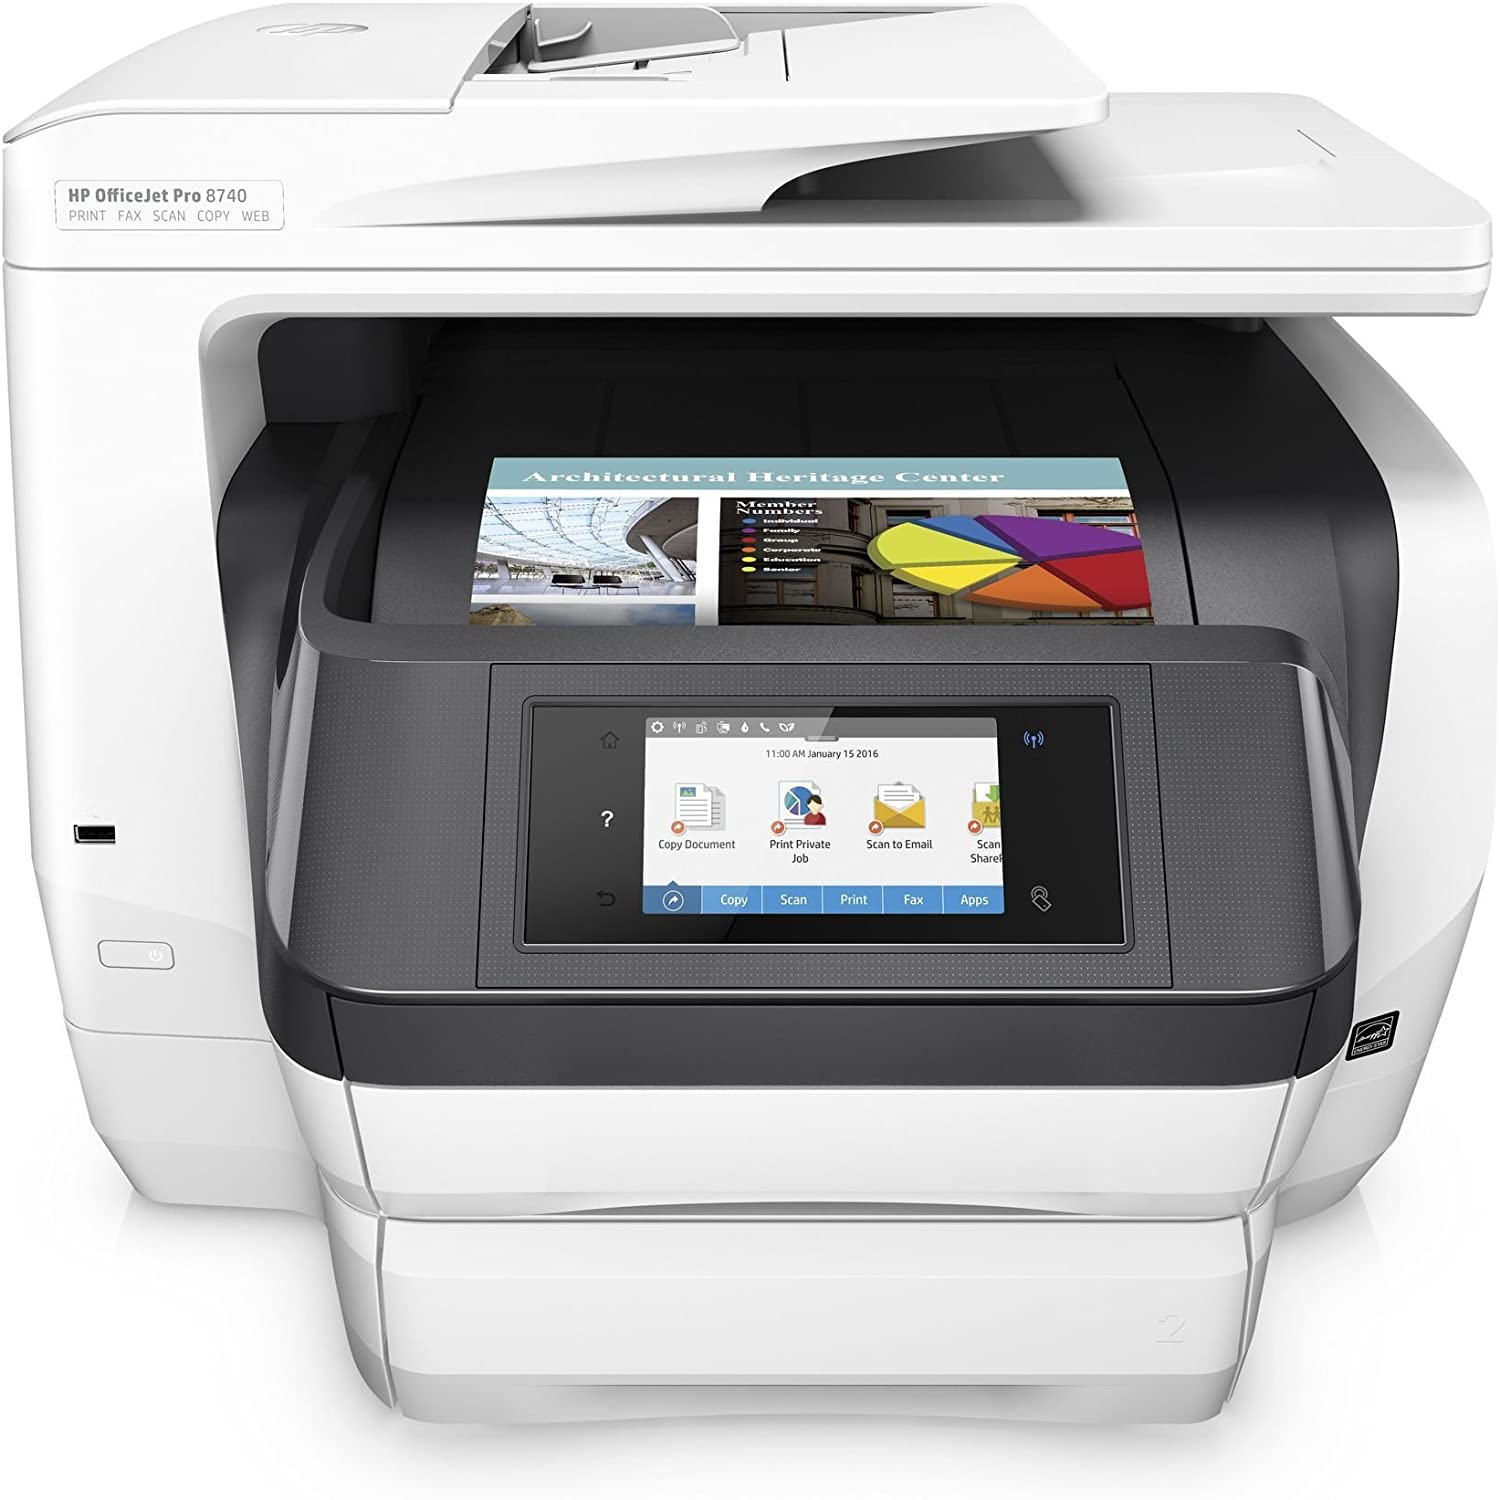 HP OfficeJet Pro 8740 All-in-One Wireless Printer with Mobile Printing, HP Instant Ink & Amazon Dash Replenishment ready (K7S42A) (Renewed)